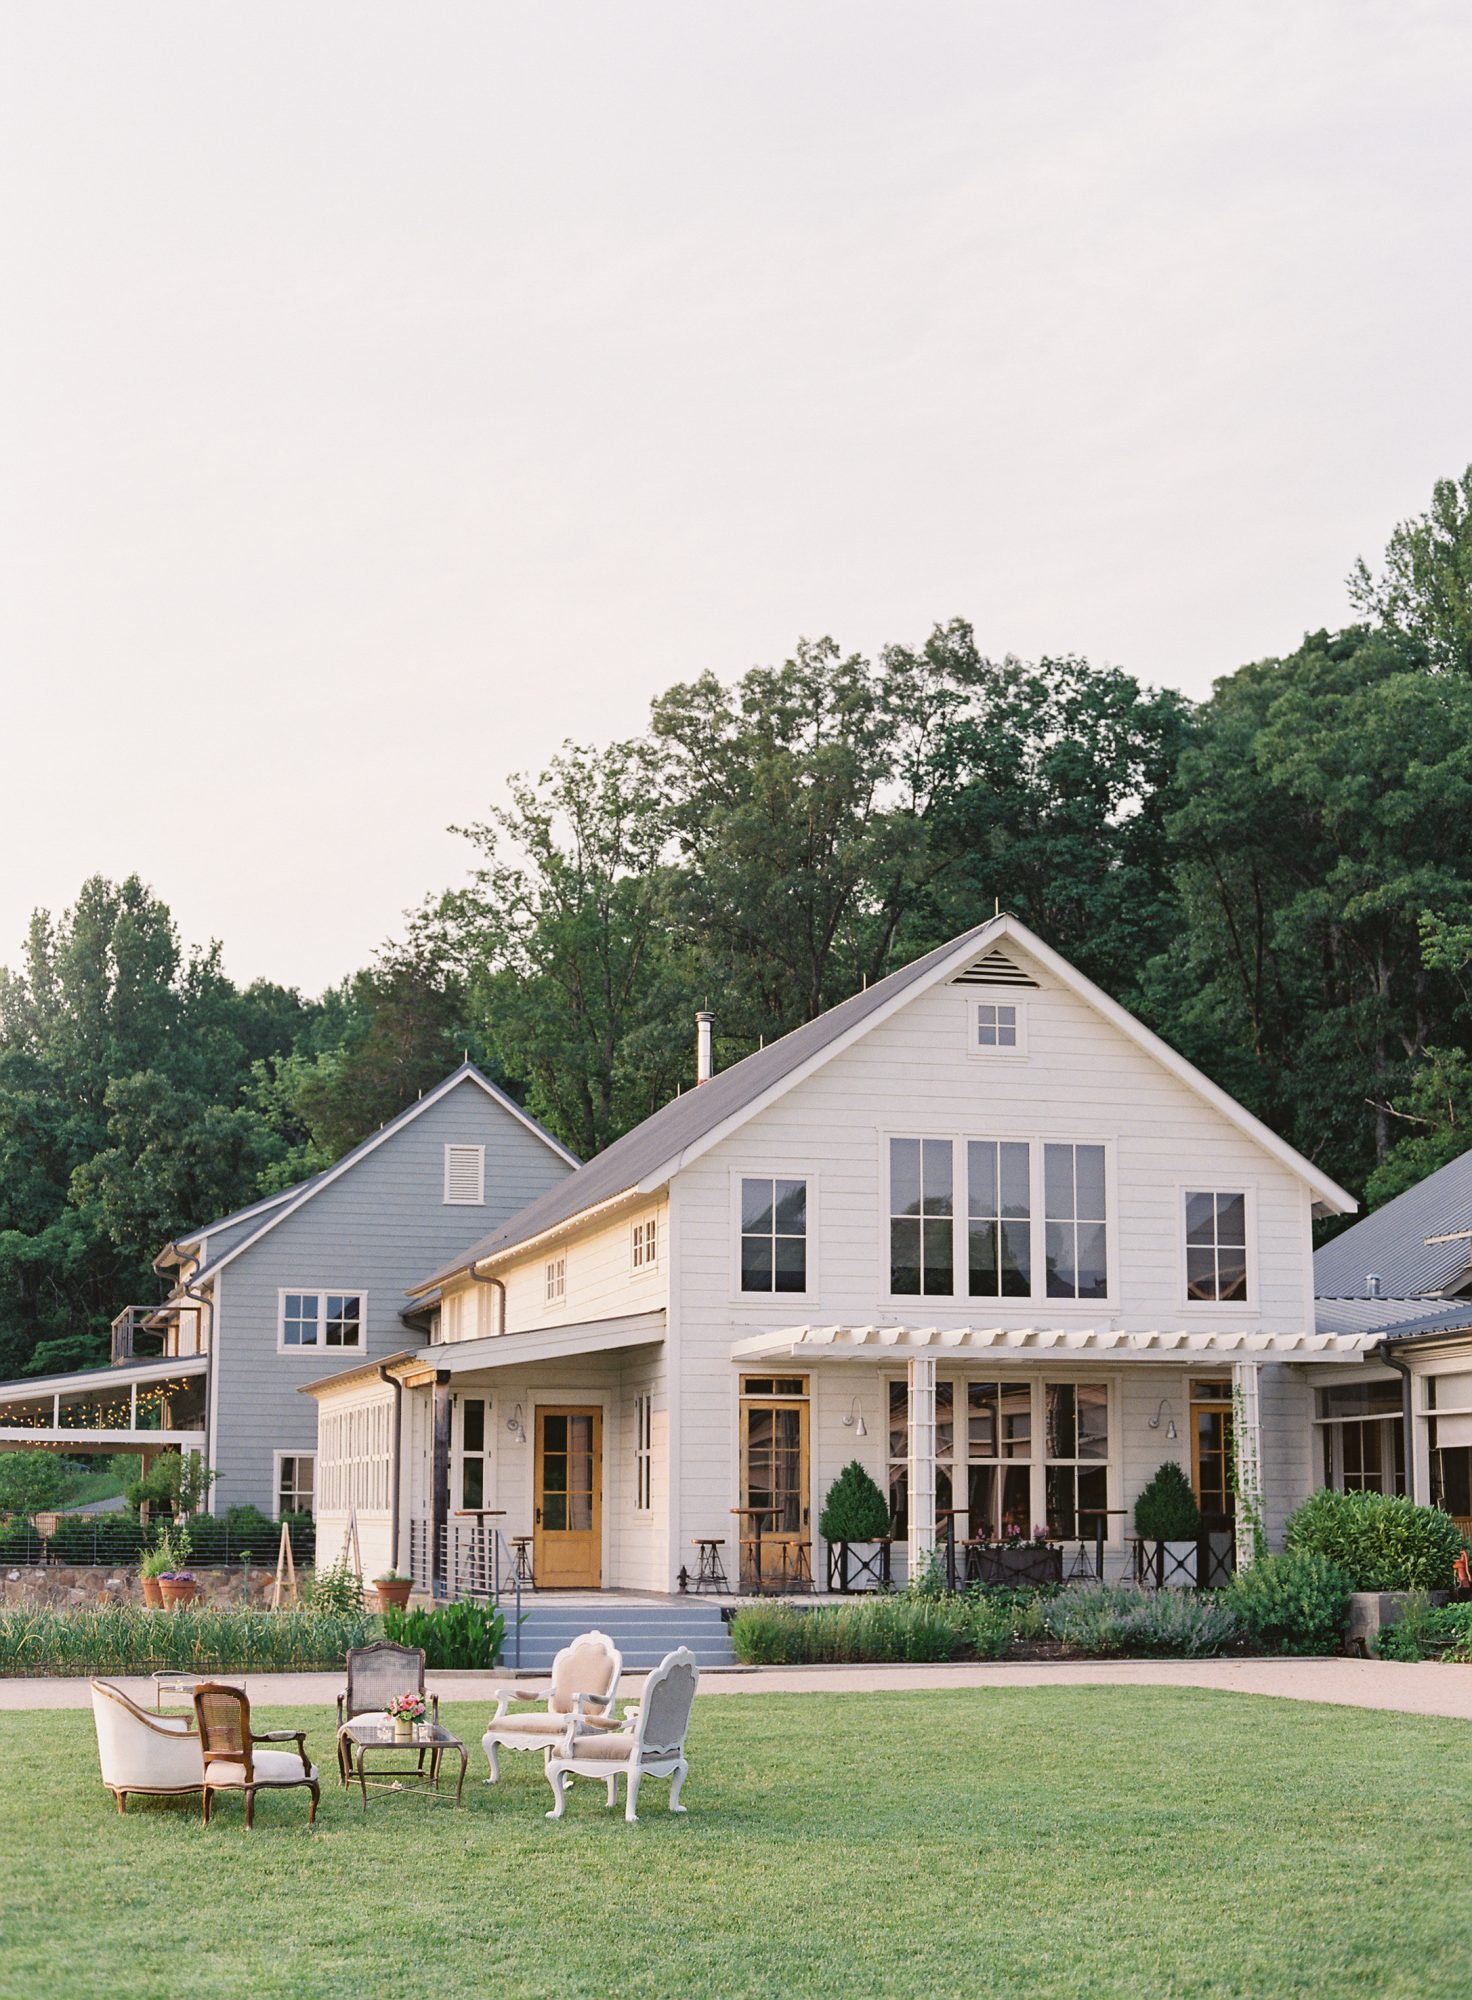 ronita ryan wedding venue exterior